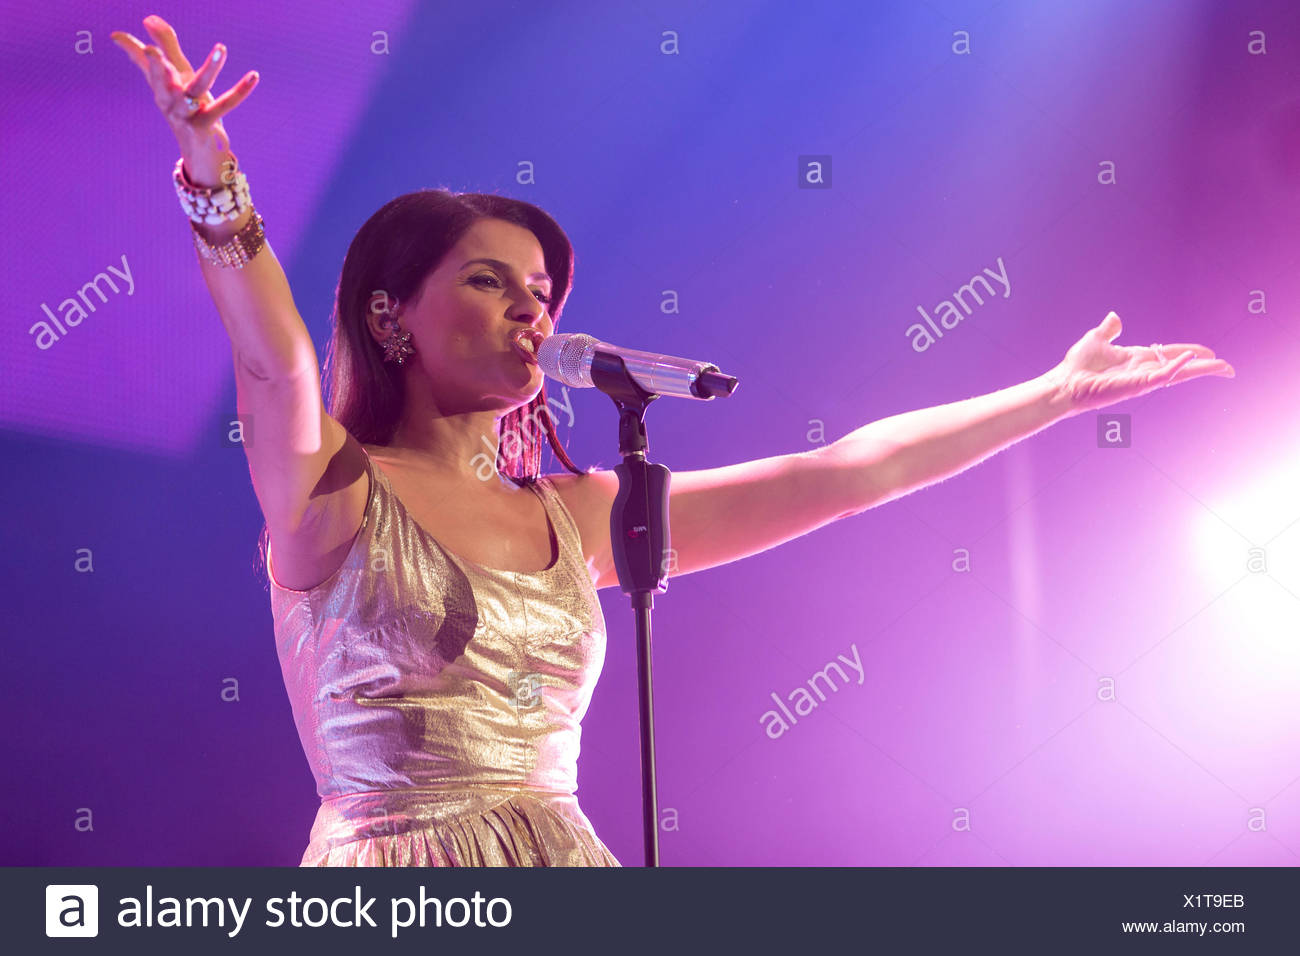 The Portuguese-Canadian singer Nelly Furtado performing live at Energy Stars For Free event, Hallenstadion Zuerich hall, Zurich - Stock Image